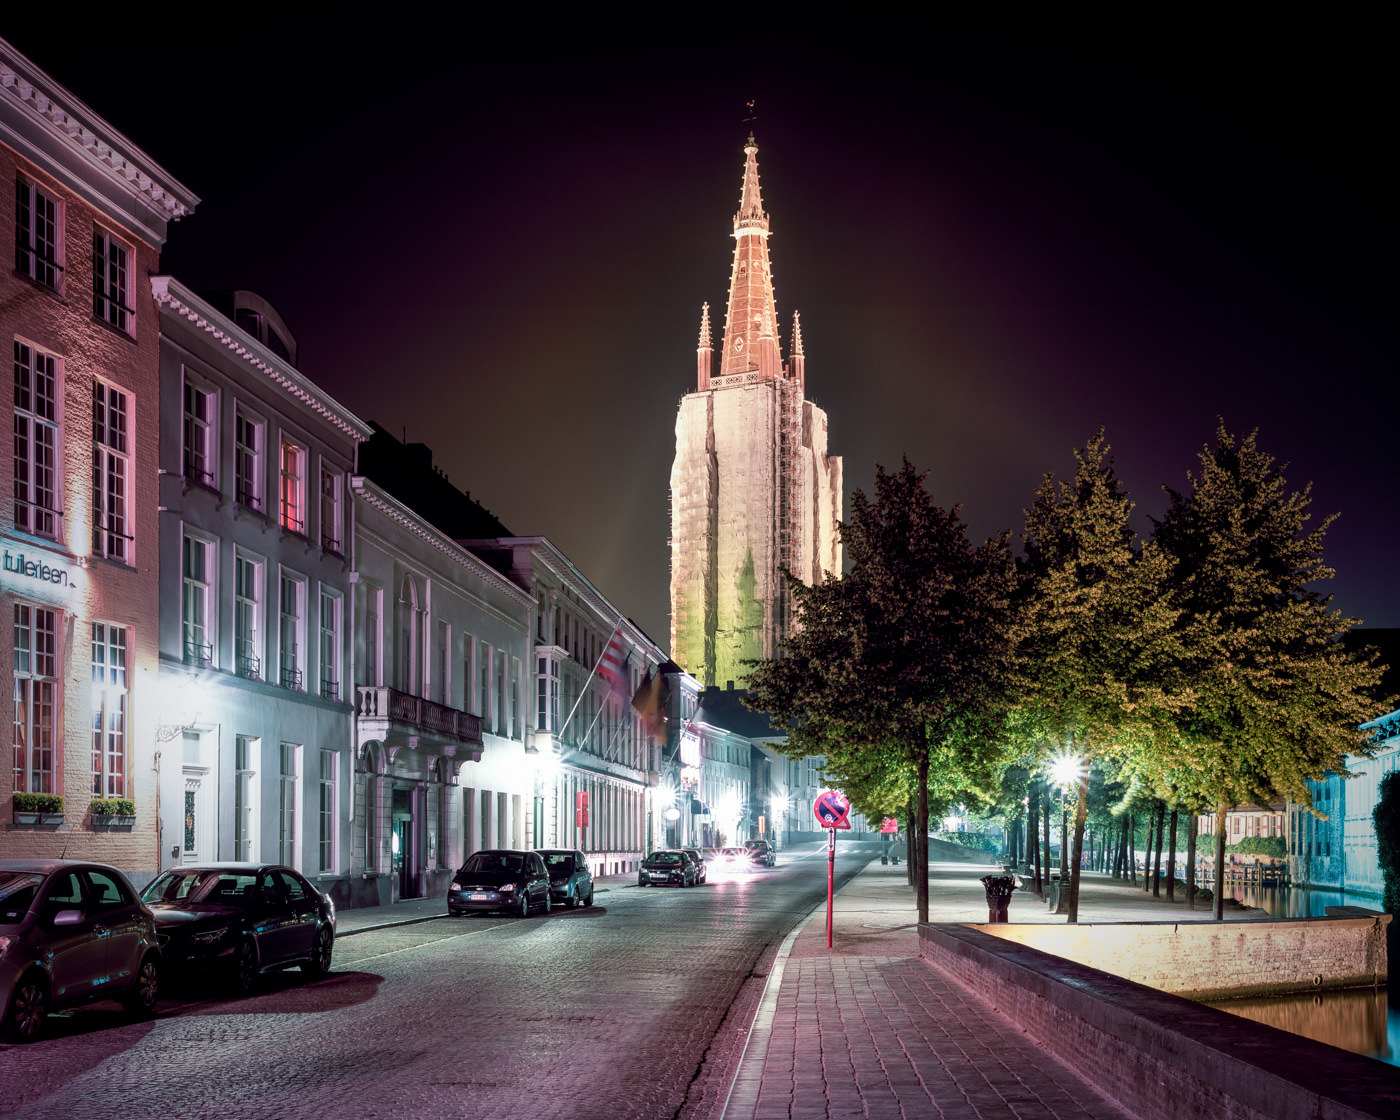 """""""Church of our Lady, Brugge"""" from the series Nylon Chrysalis, by William Mokrynski"""